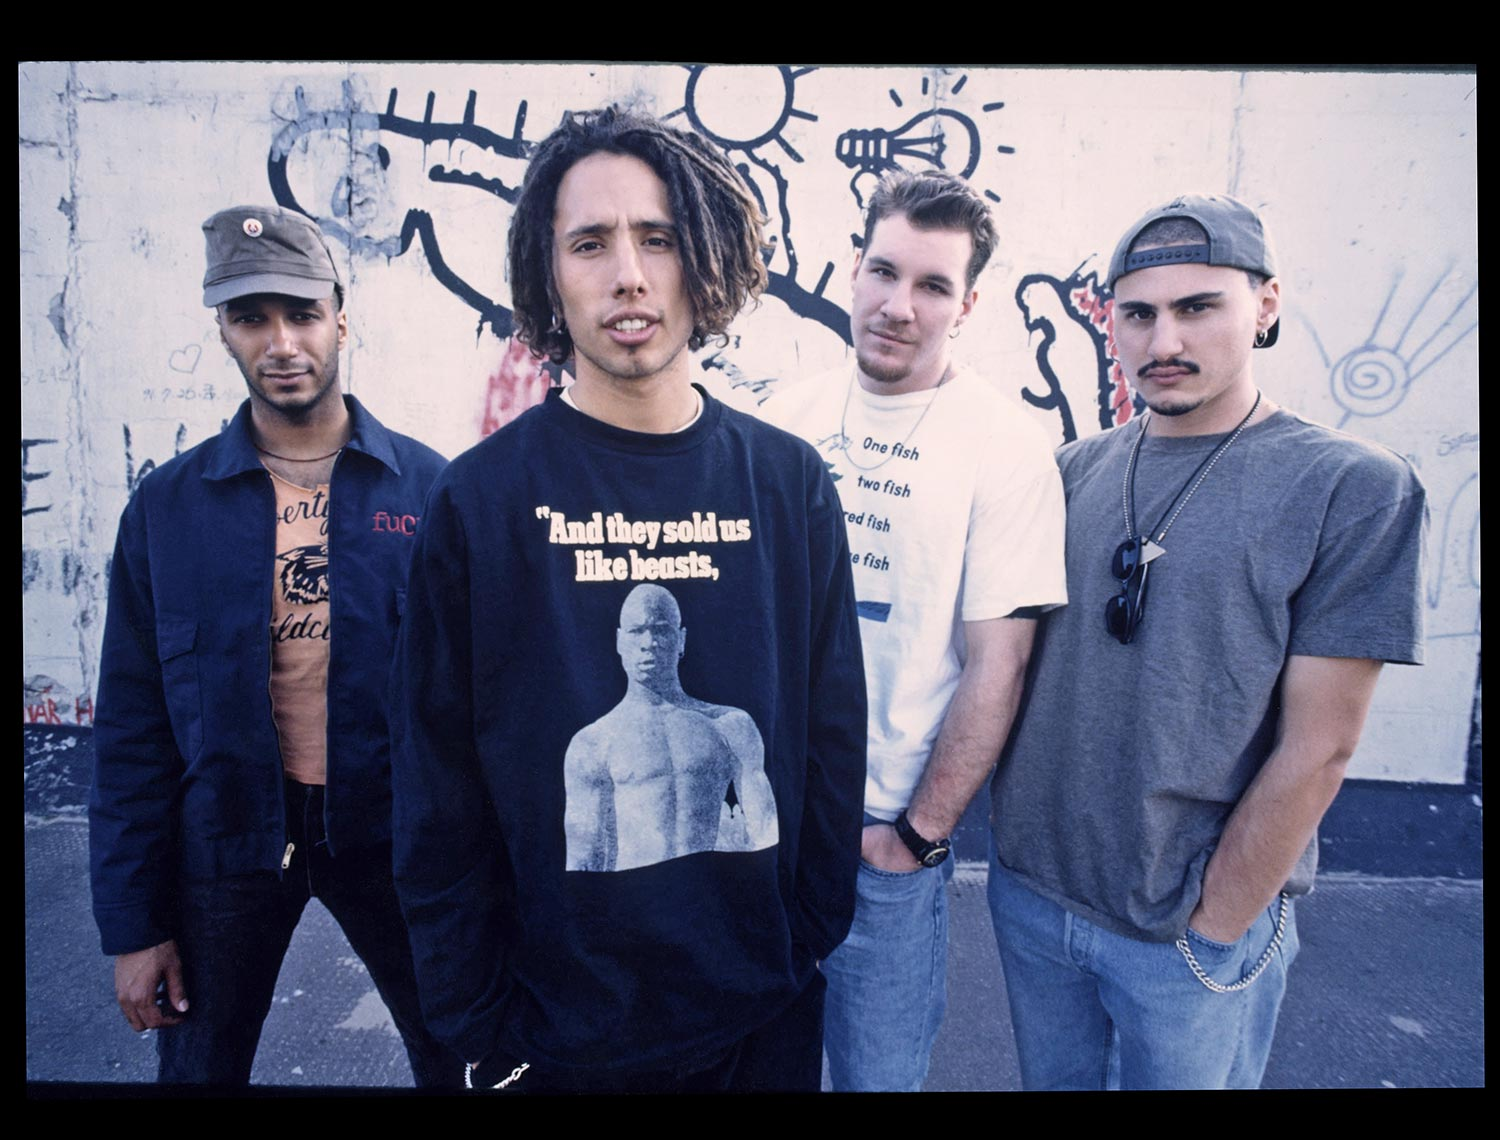 Imagen de Rage Against The Machine músico del género Rock activo en Los 90s